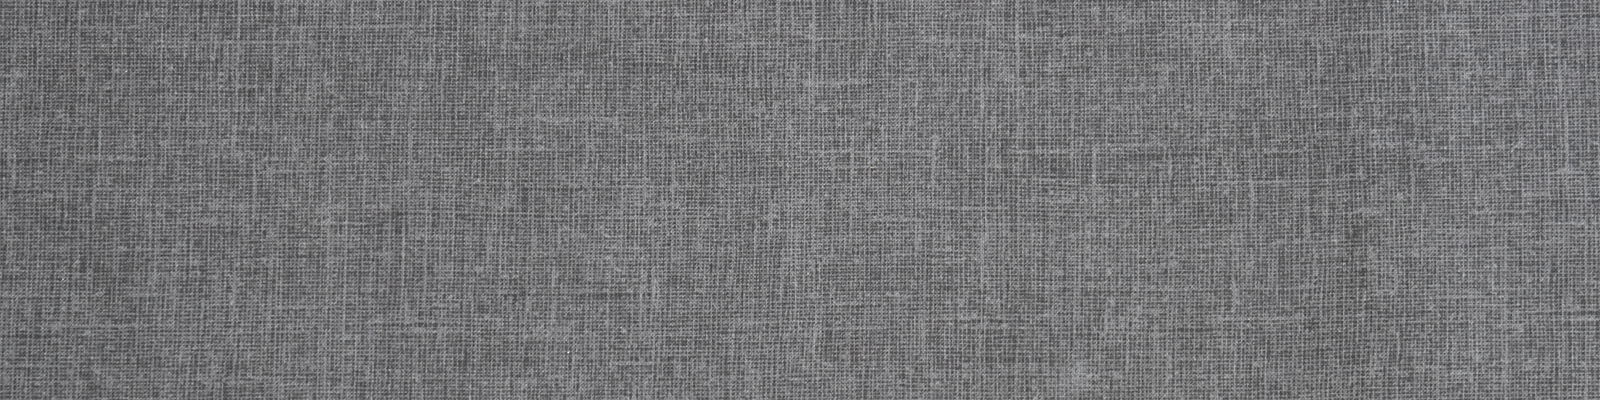 Amica Senior Lifestyles - Linen Background